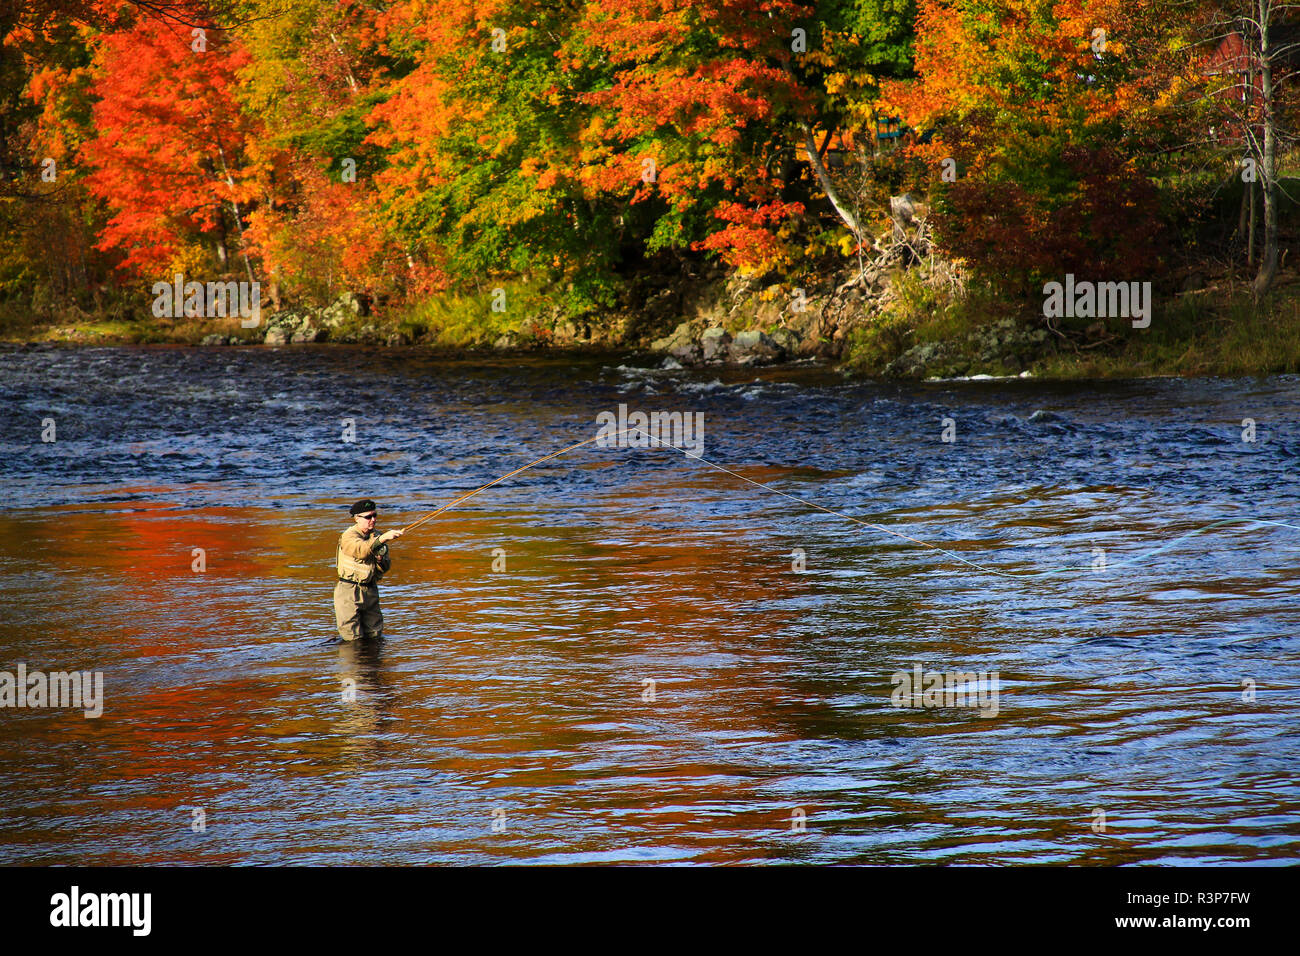 Canada, Nova Scotia, Cape Breton, Angling for salmon on the Margaree river Stock Photo